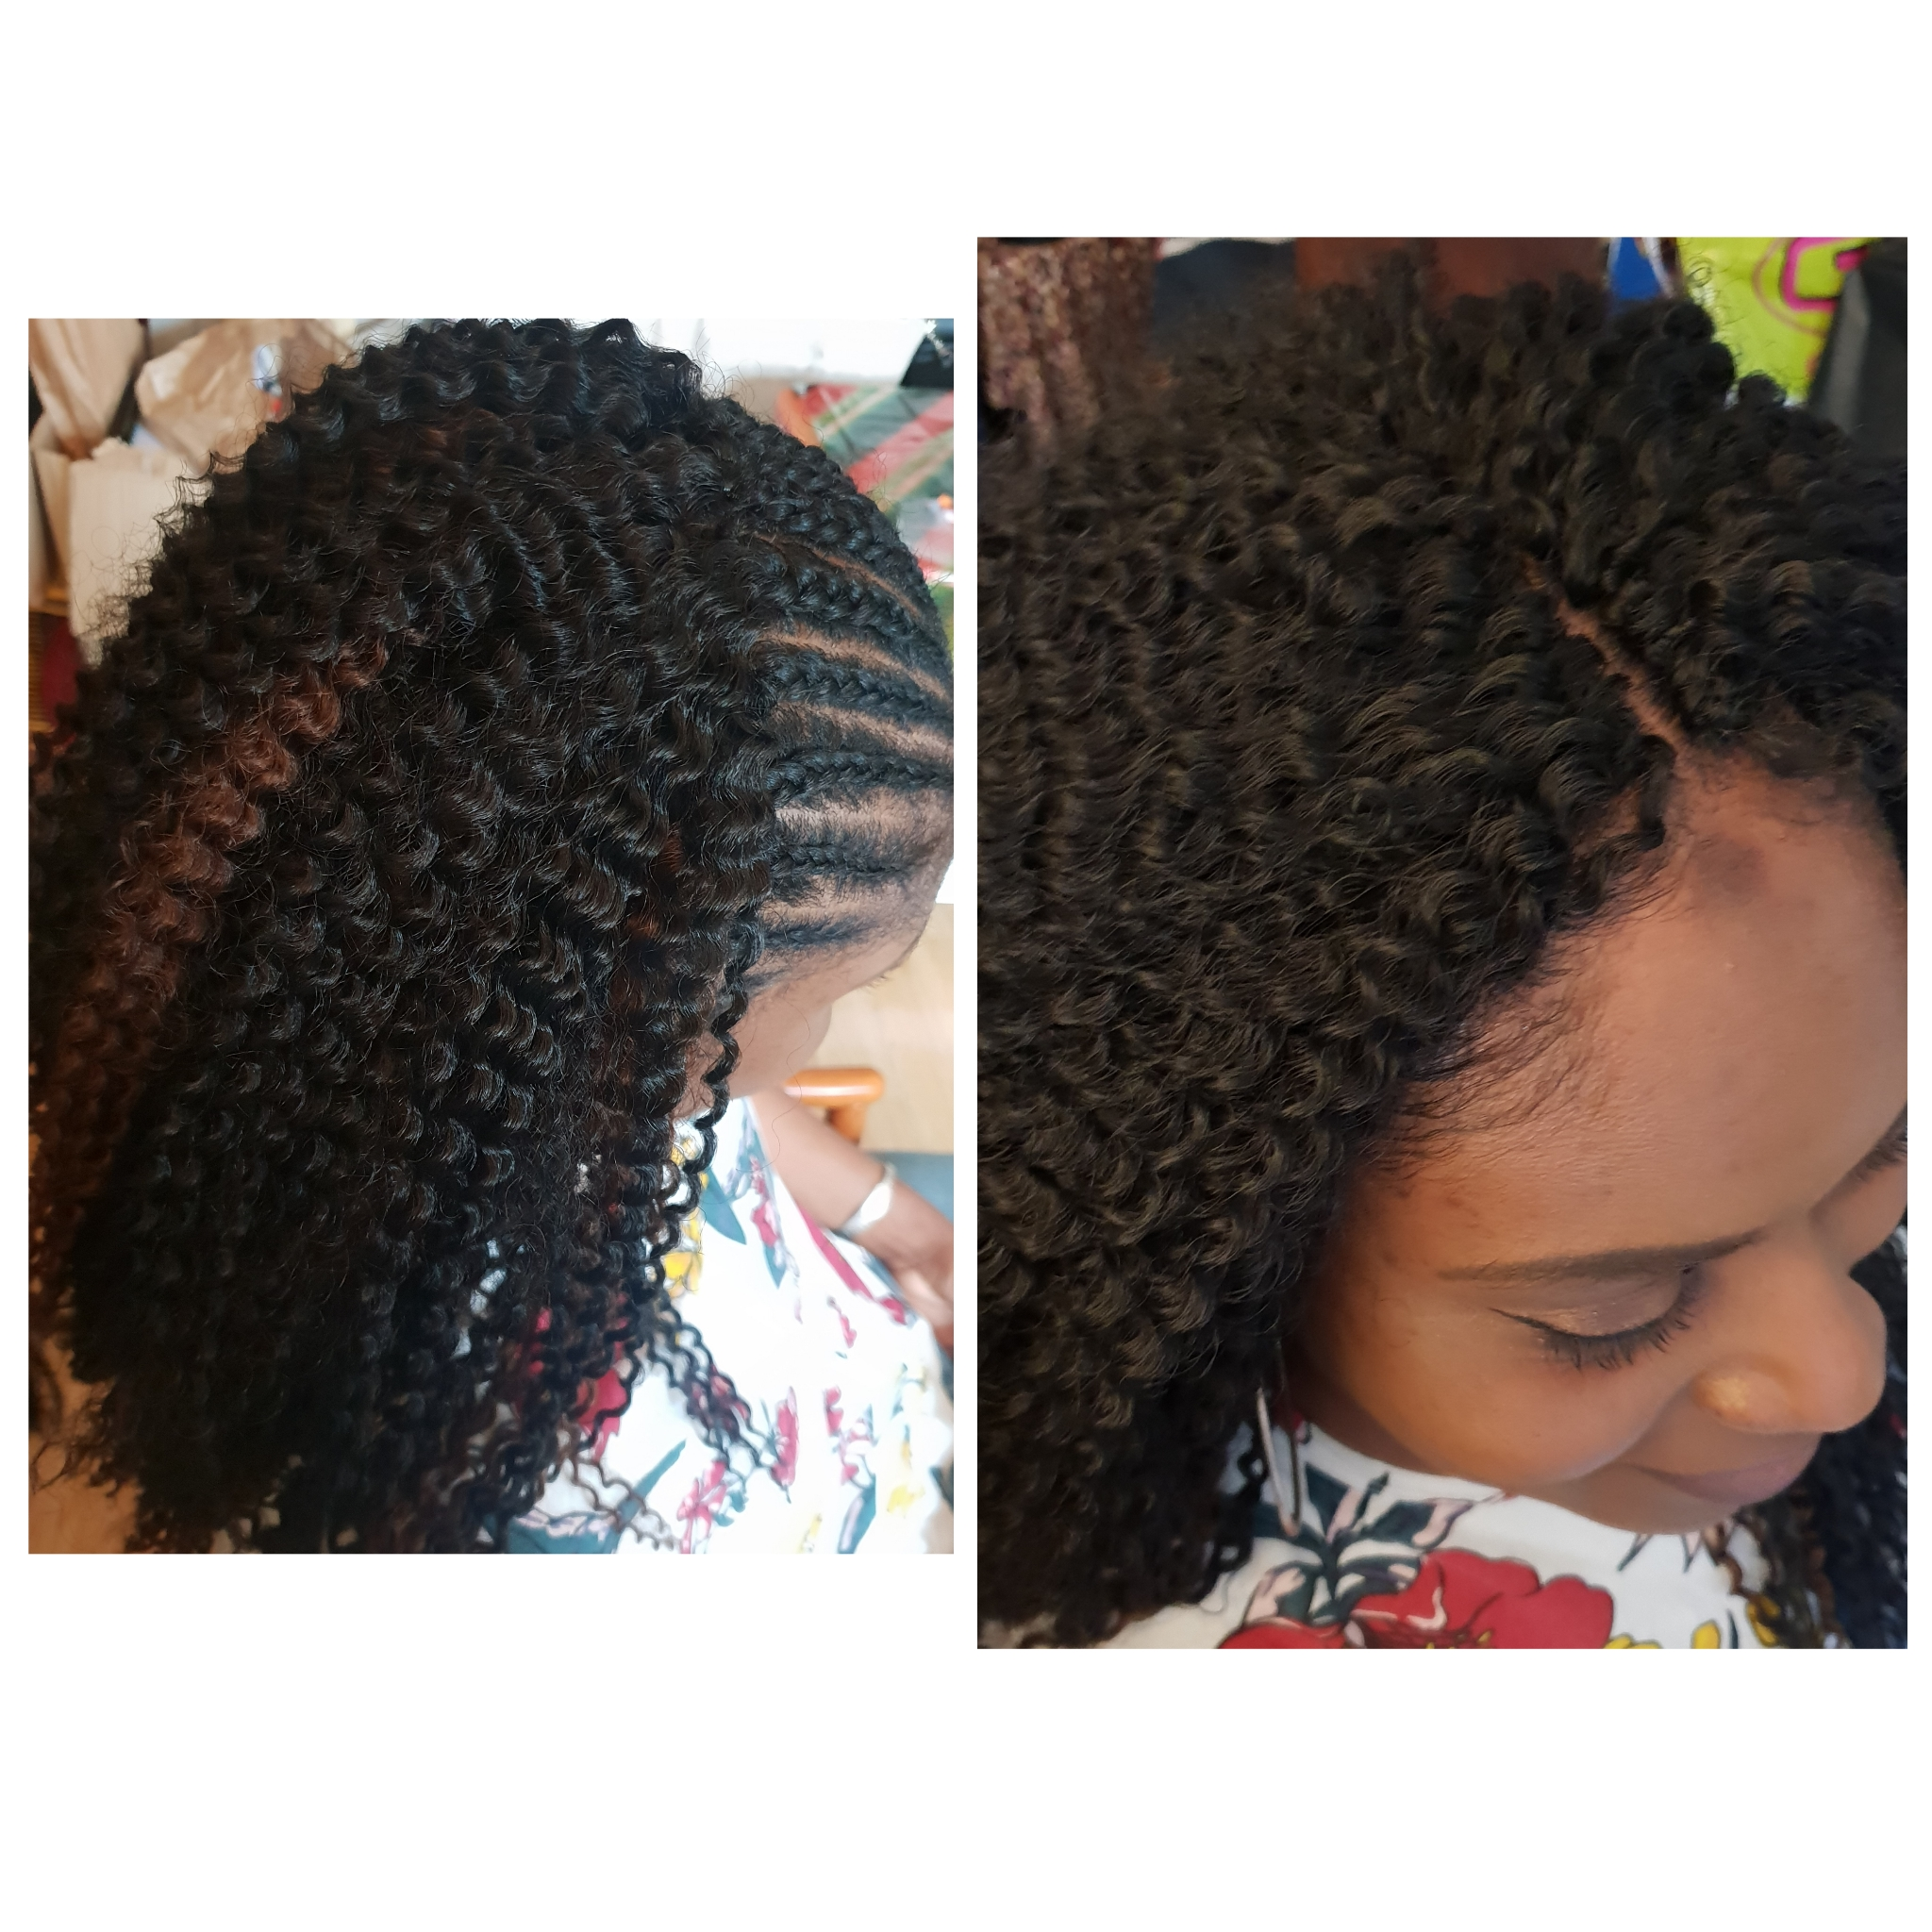 salon de coiffure afro tresse tresses box braids crochet braids vanilles tissages paris 75 77 78 91 92 93 94 95 CFSLLDBN